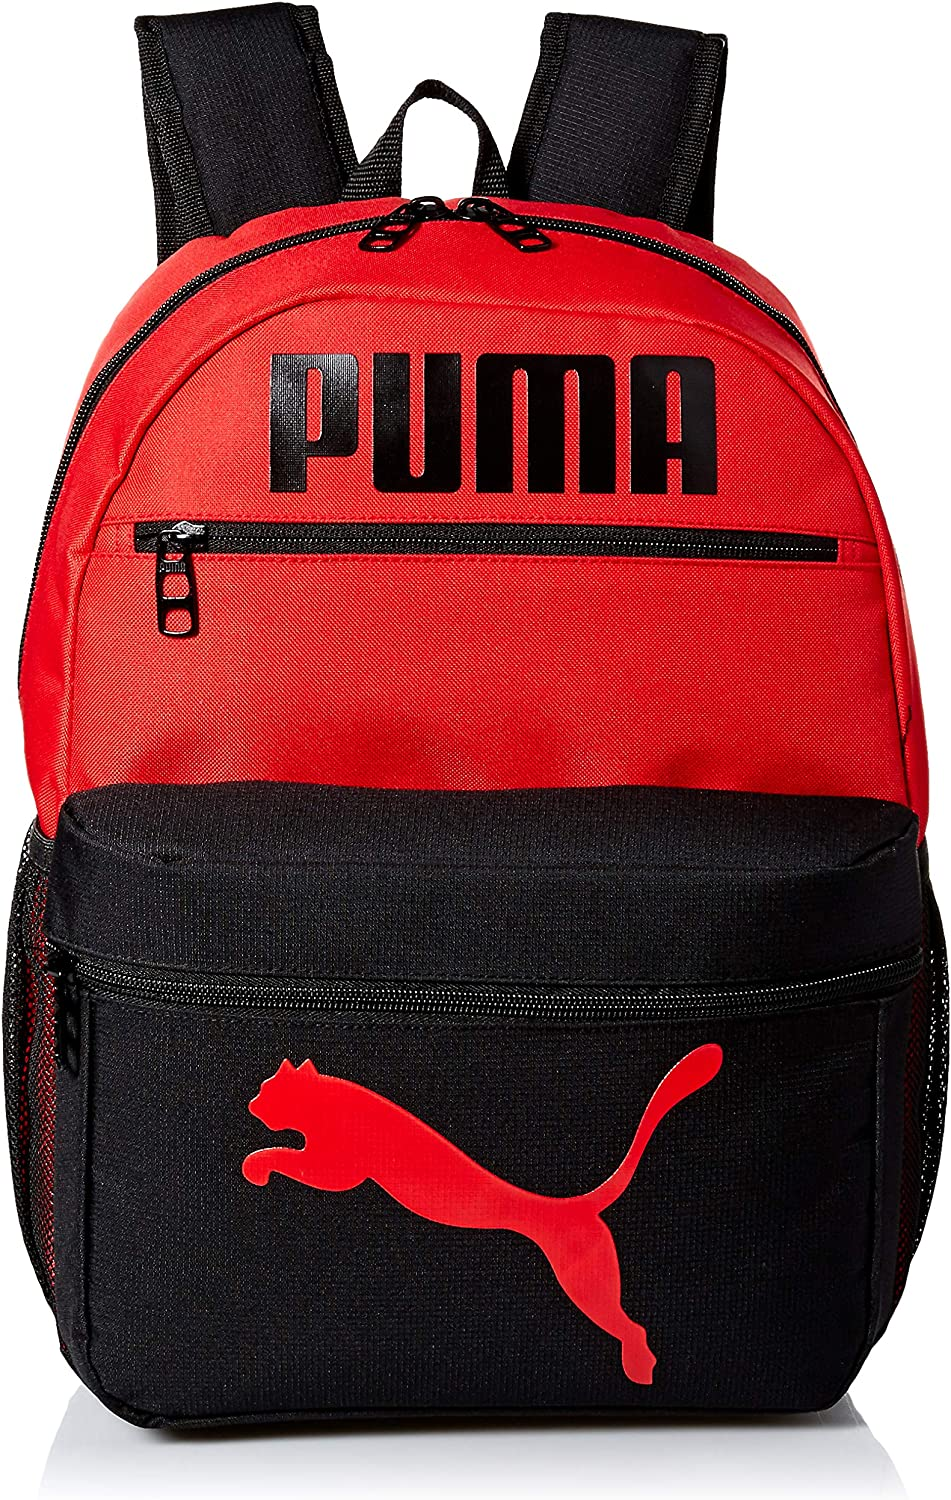 Top 10 Fast Food Backpack For Boys